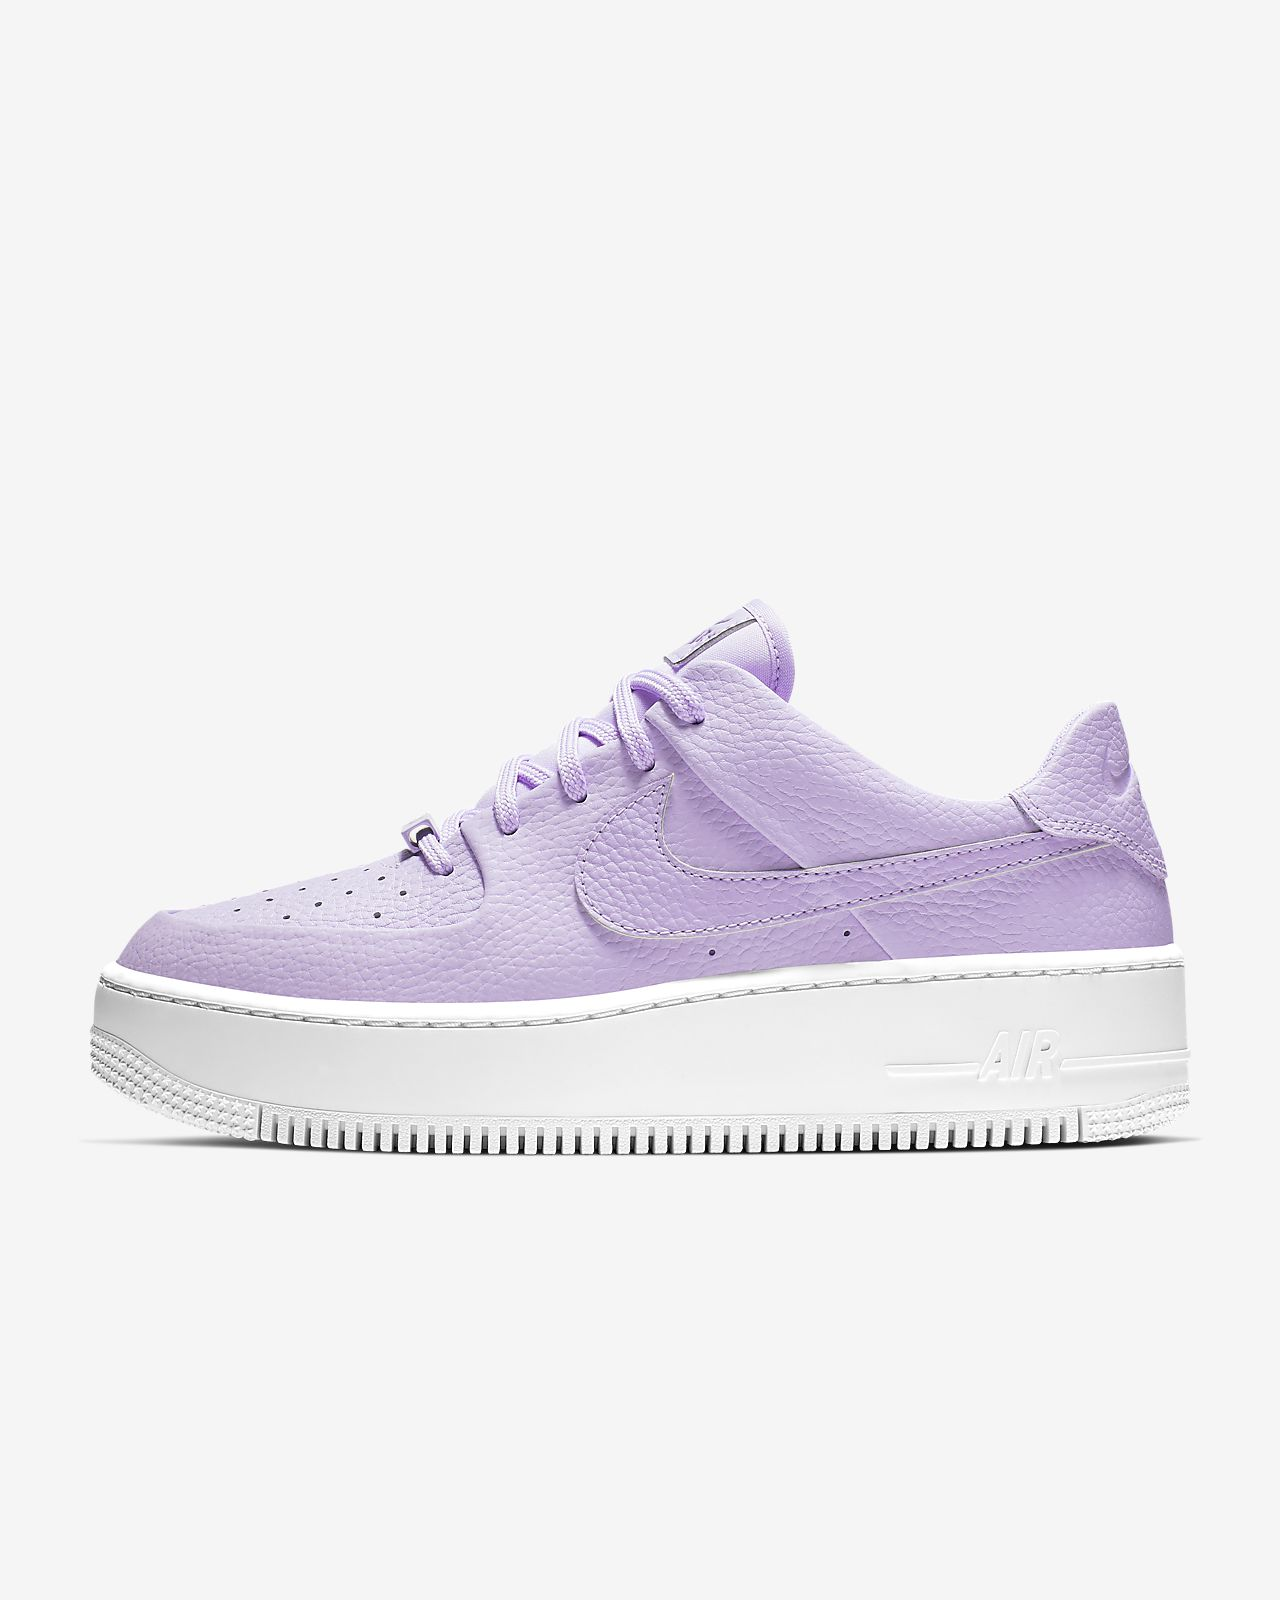 lowest price 273d6 a6f71 ... Nike Air Force 1 Sage Low-sko til kvinder